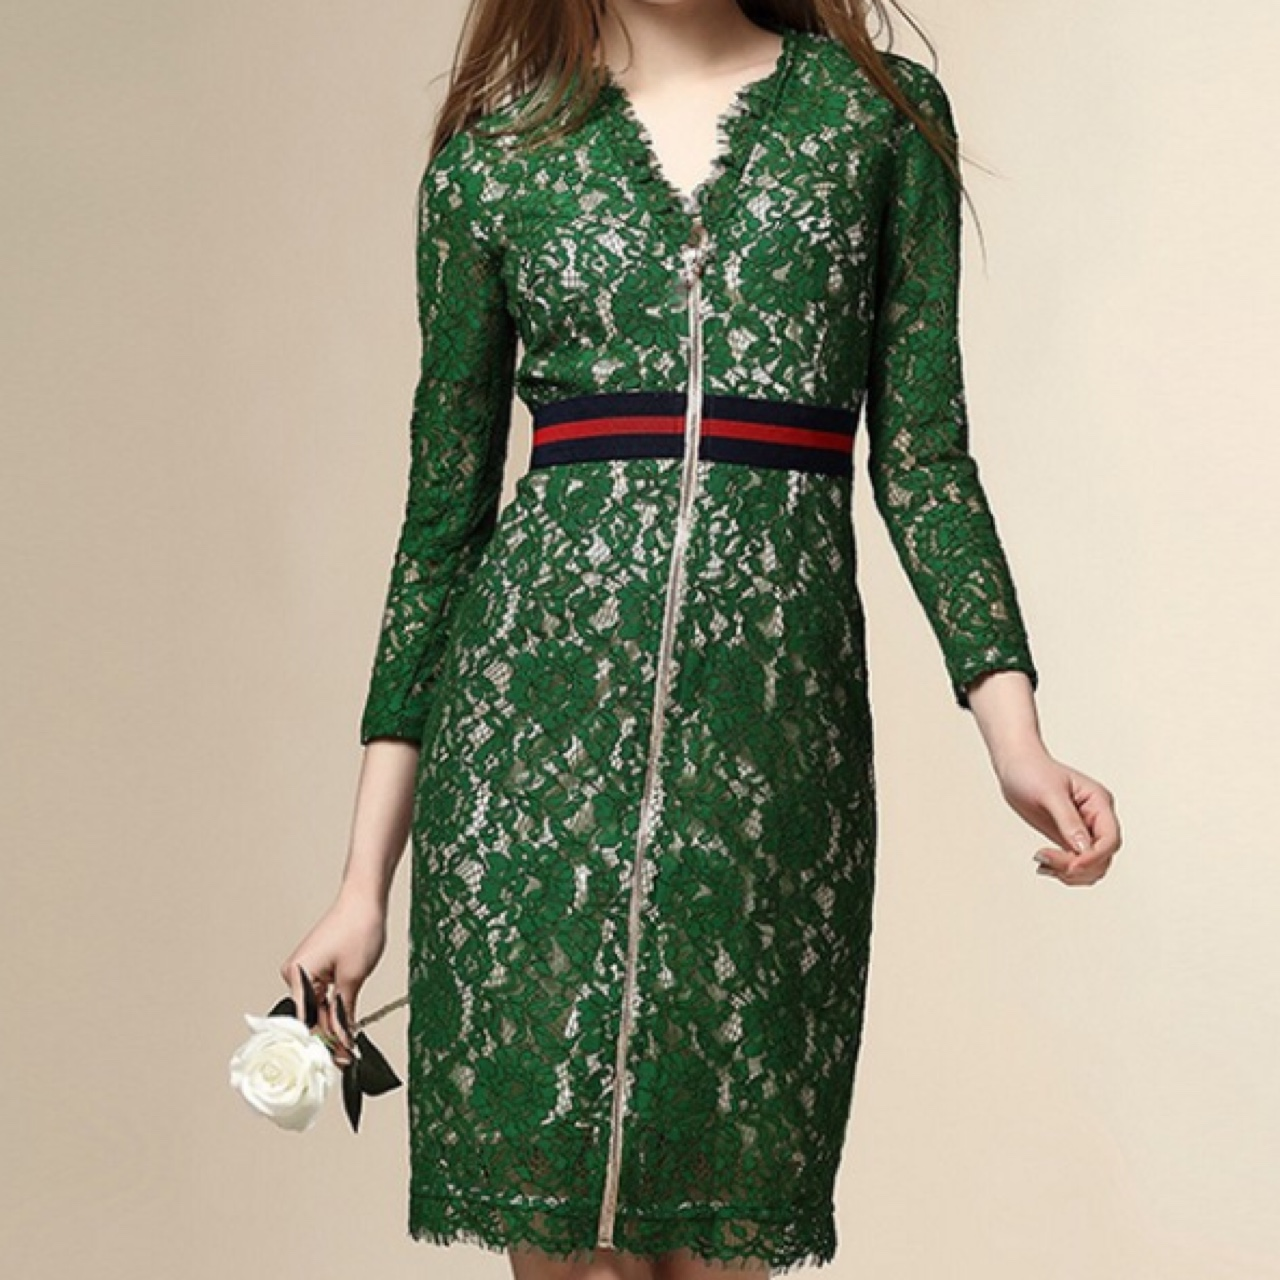 Gucci Style Green Lace Dress Navy And Red Waist Depop